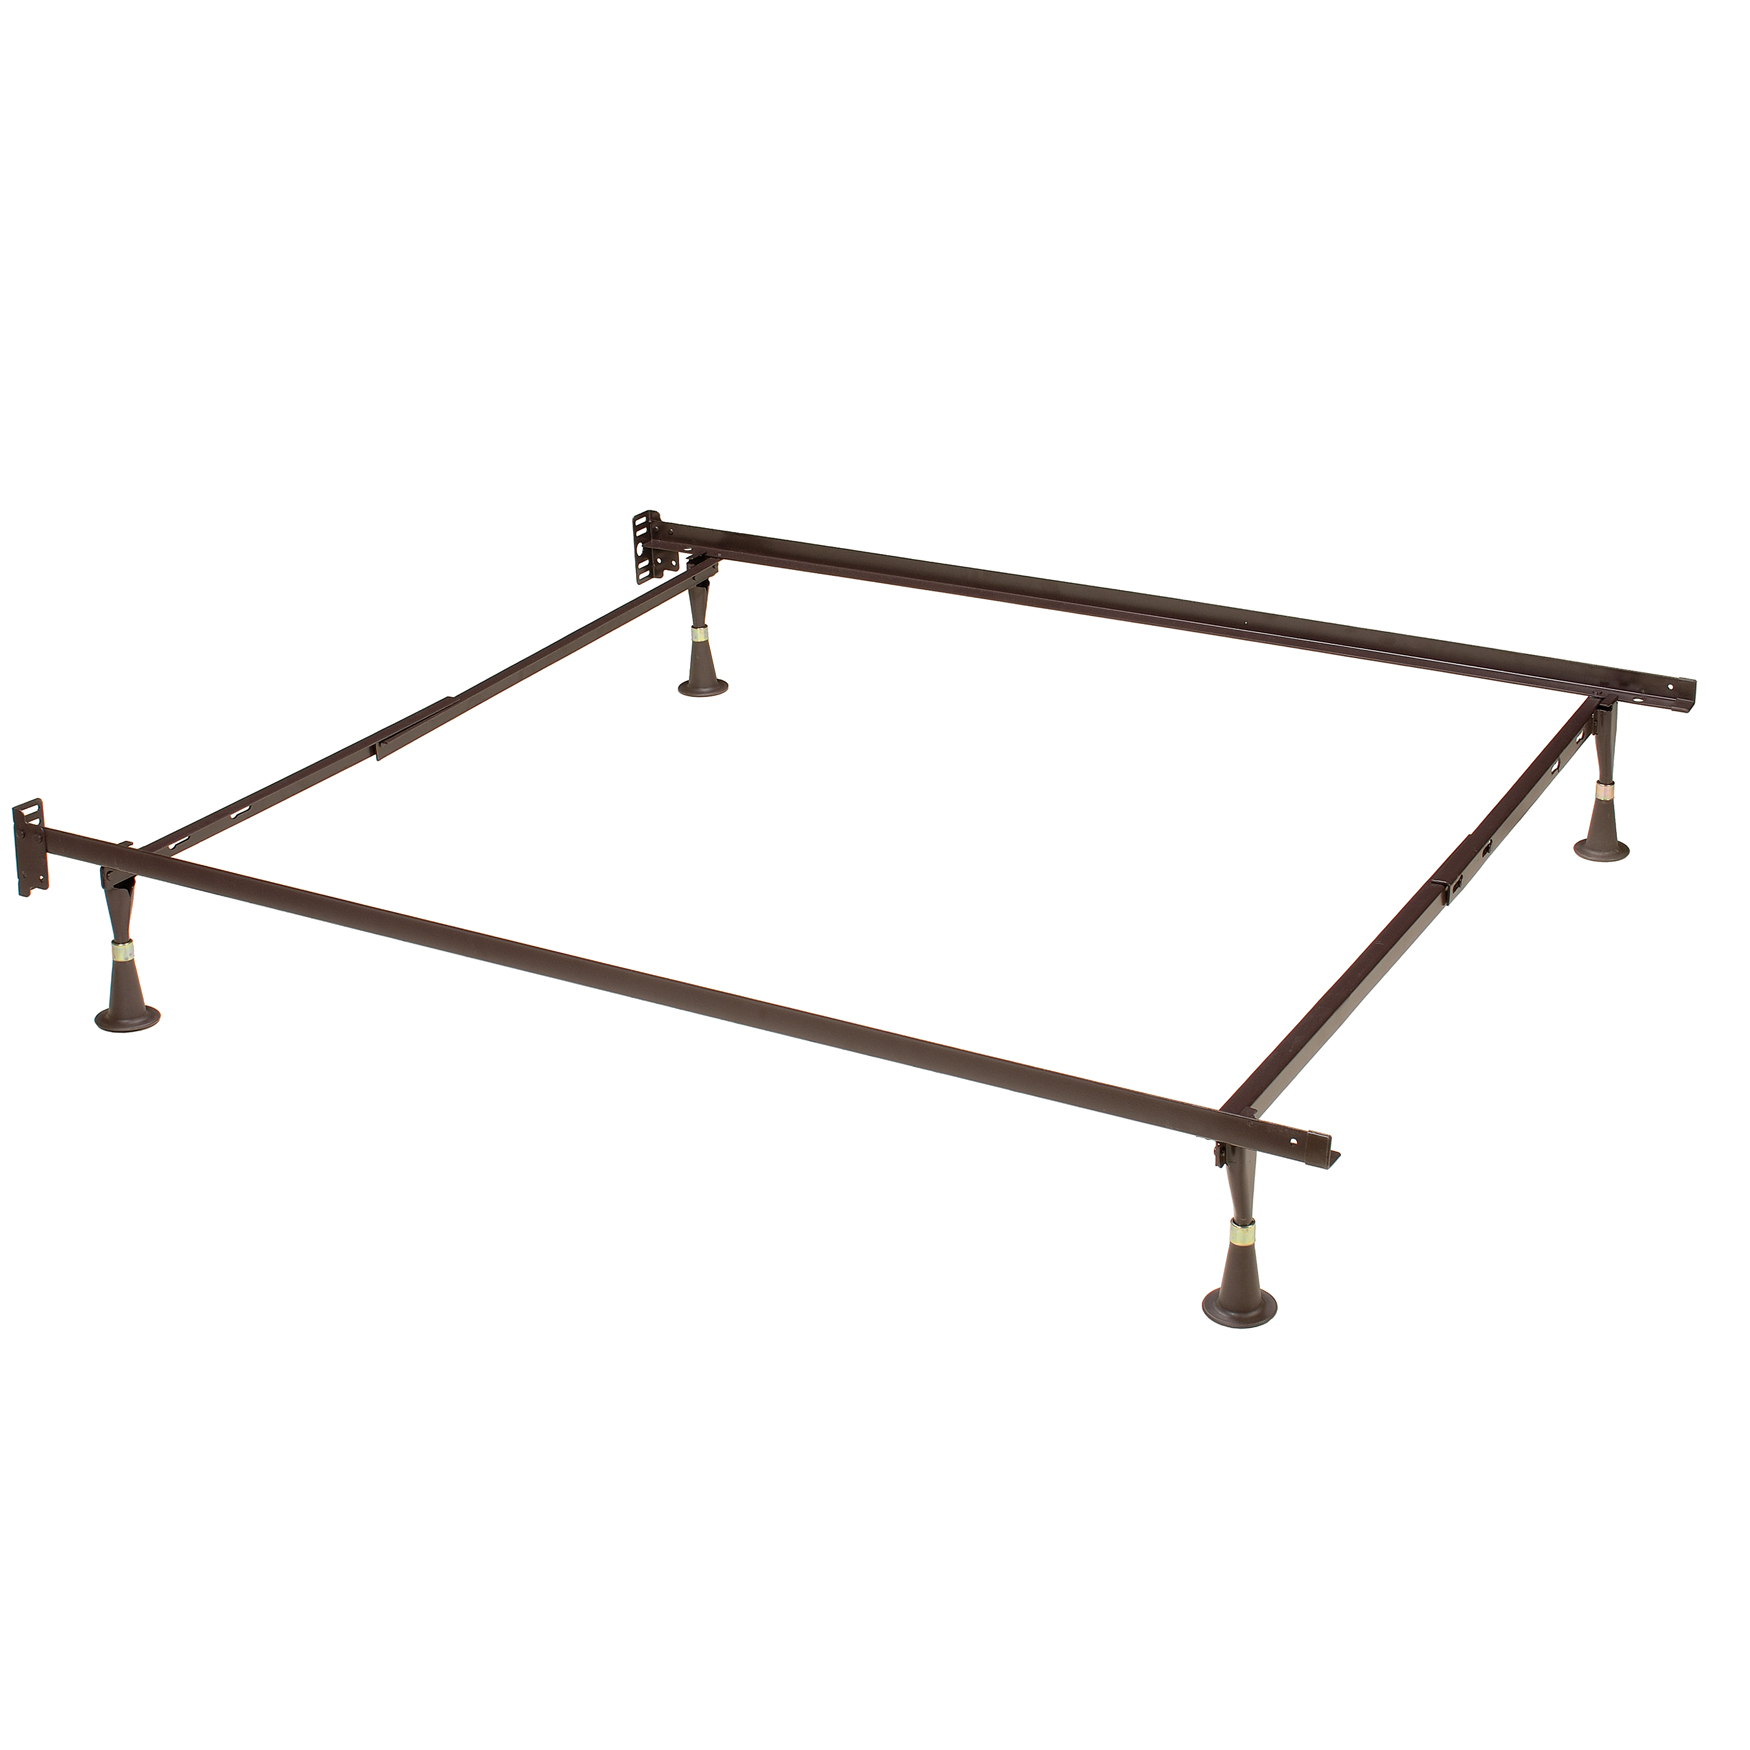 Hillsdale 4 Leg Twin/Full Bed Frame, METAL